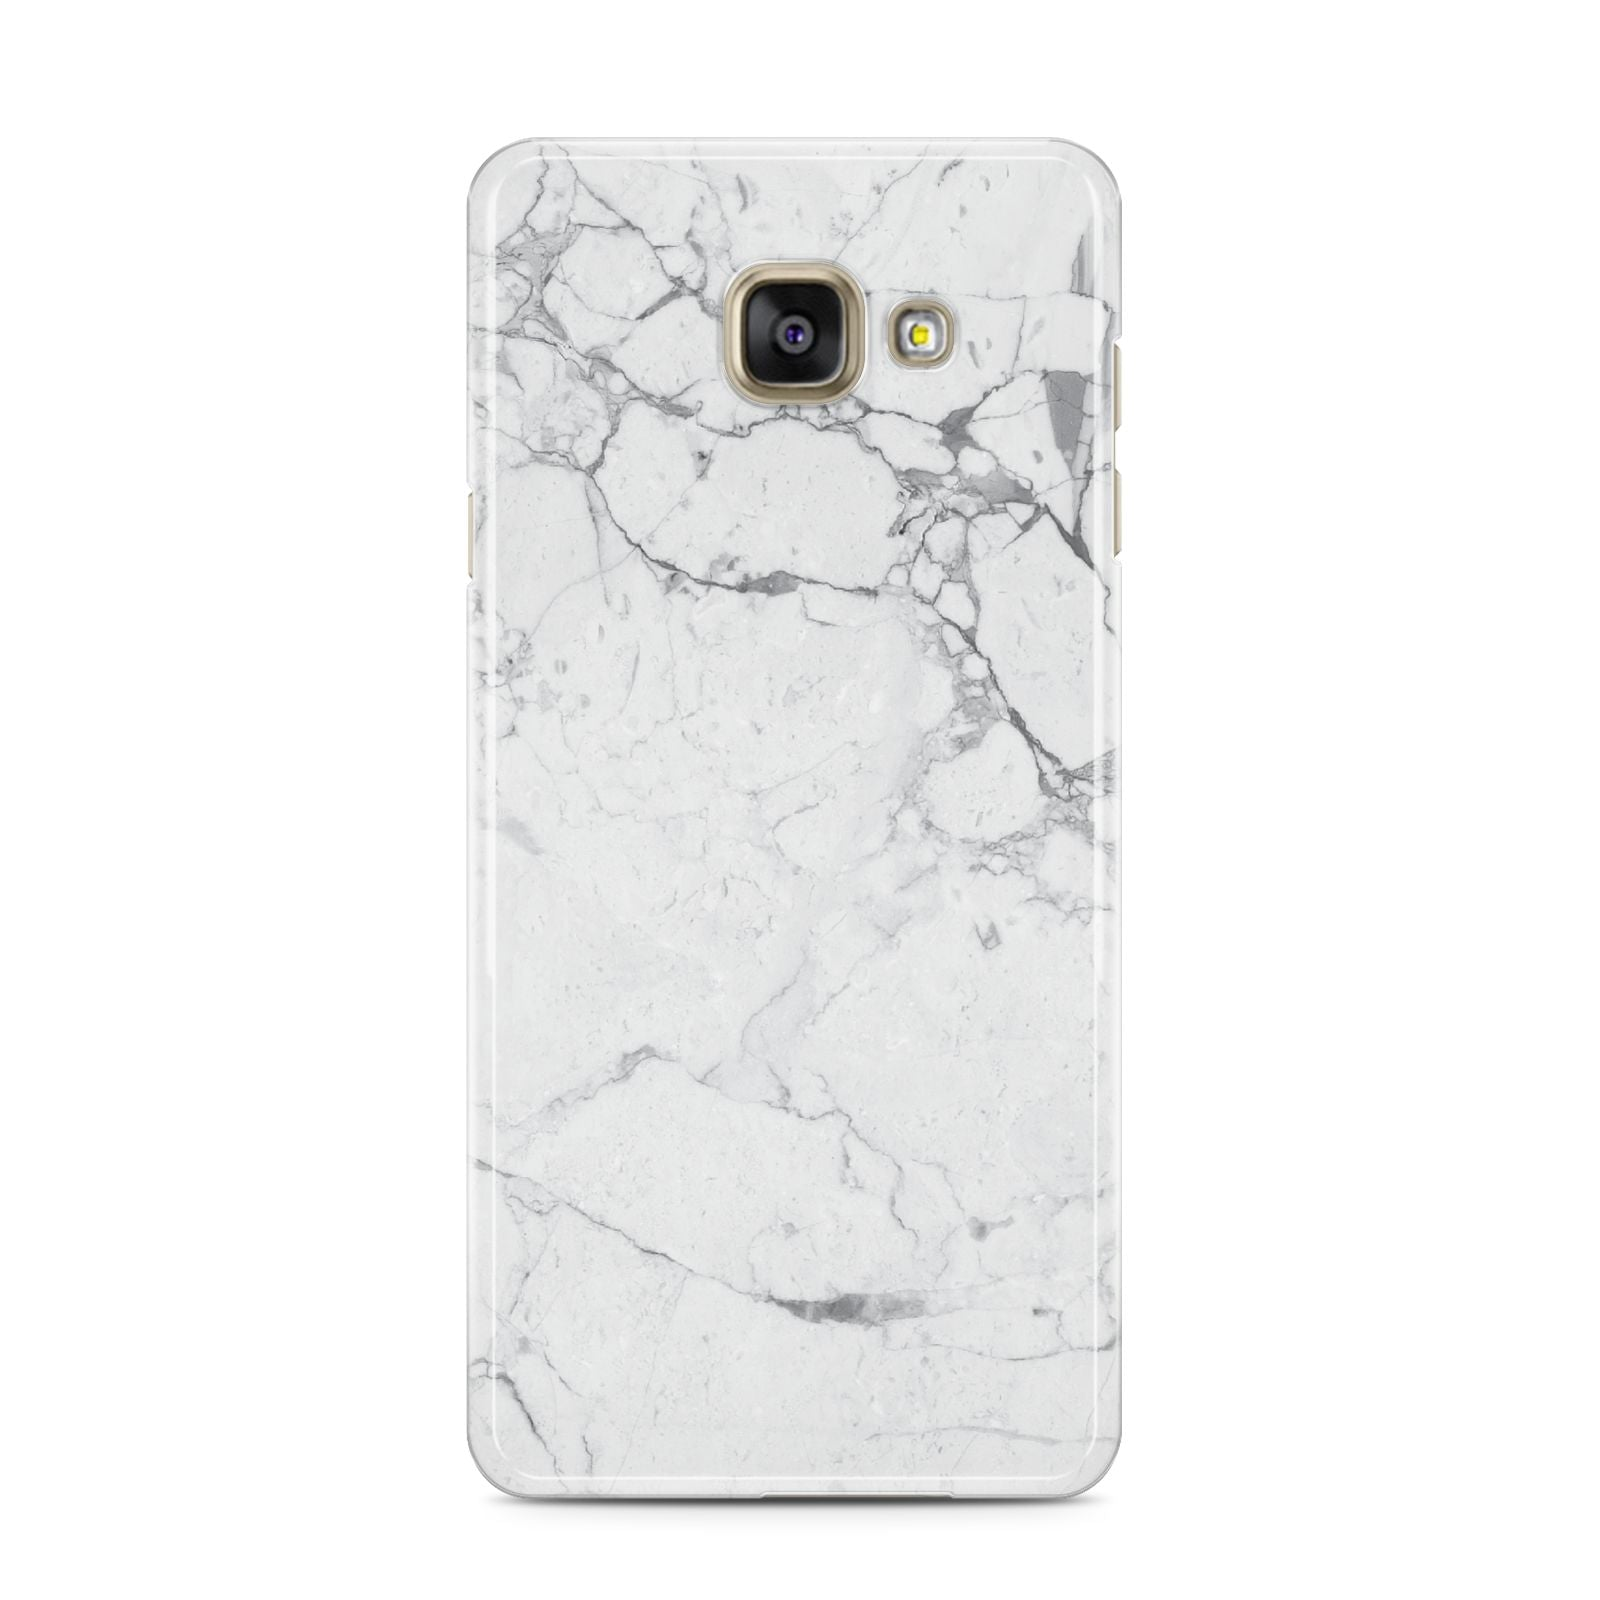 Faux Marble Effect Grey White Samsung Galaxy A3 2016 Case on gold phone